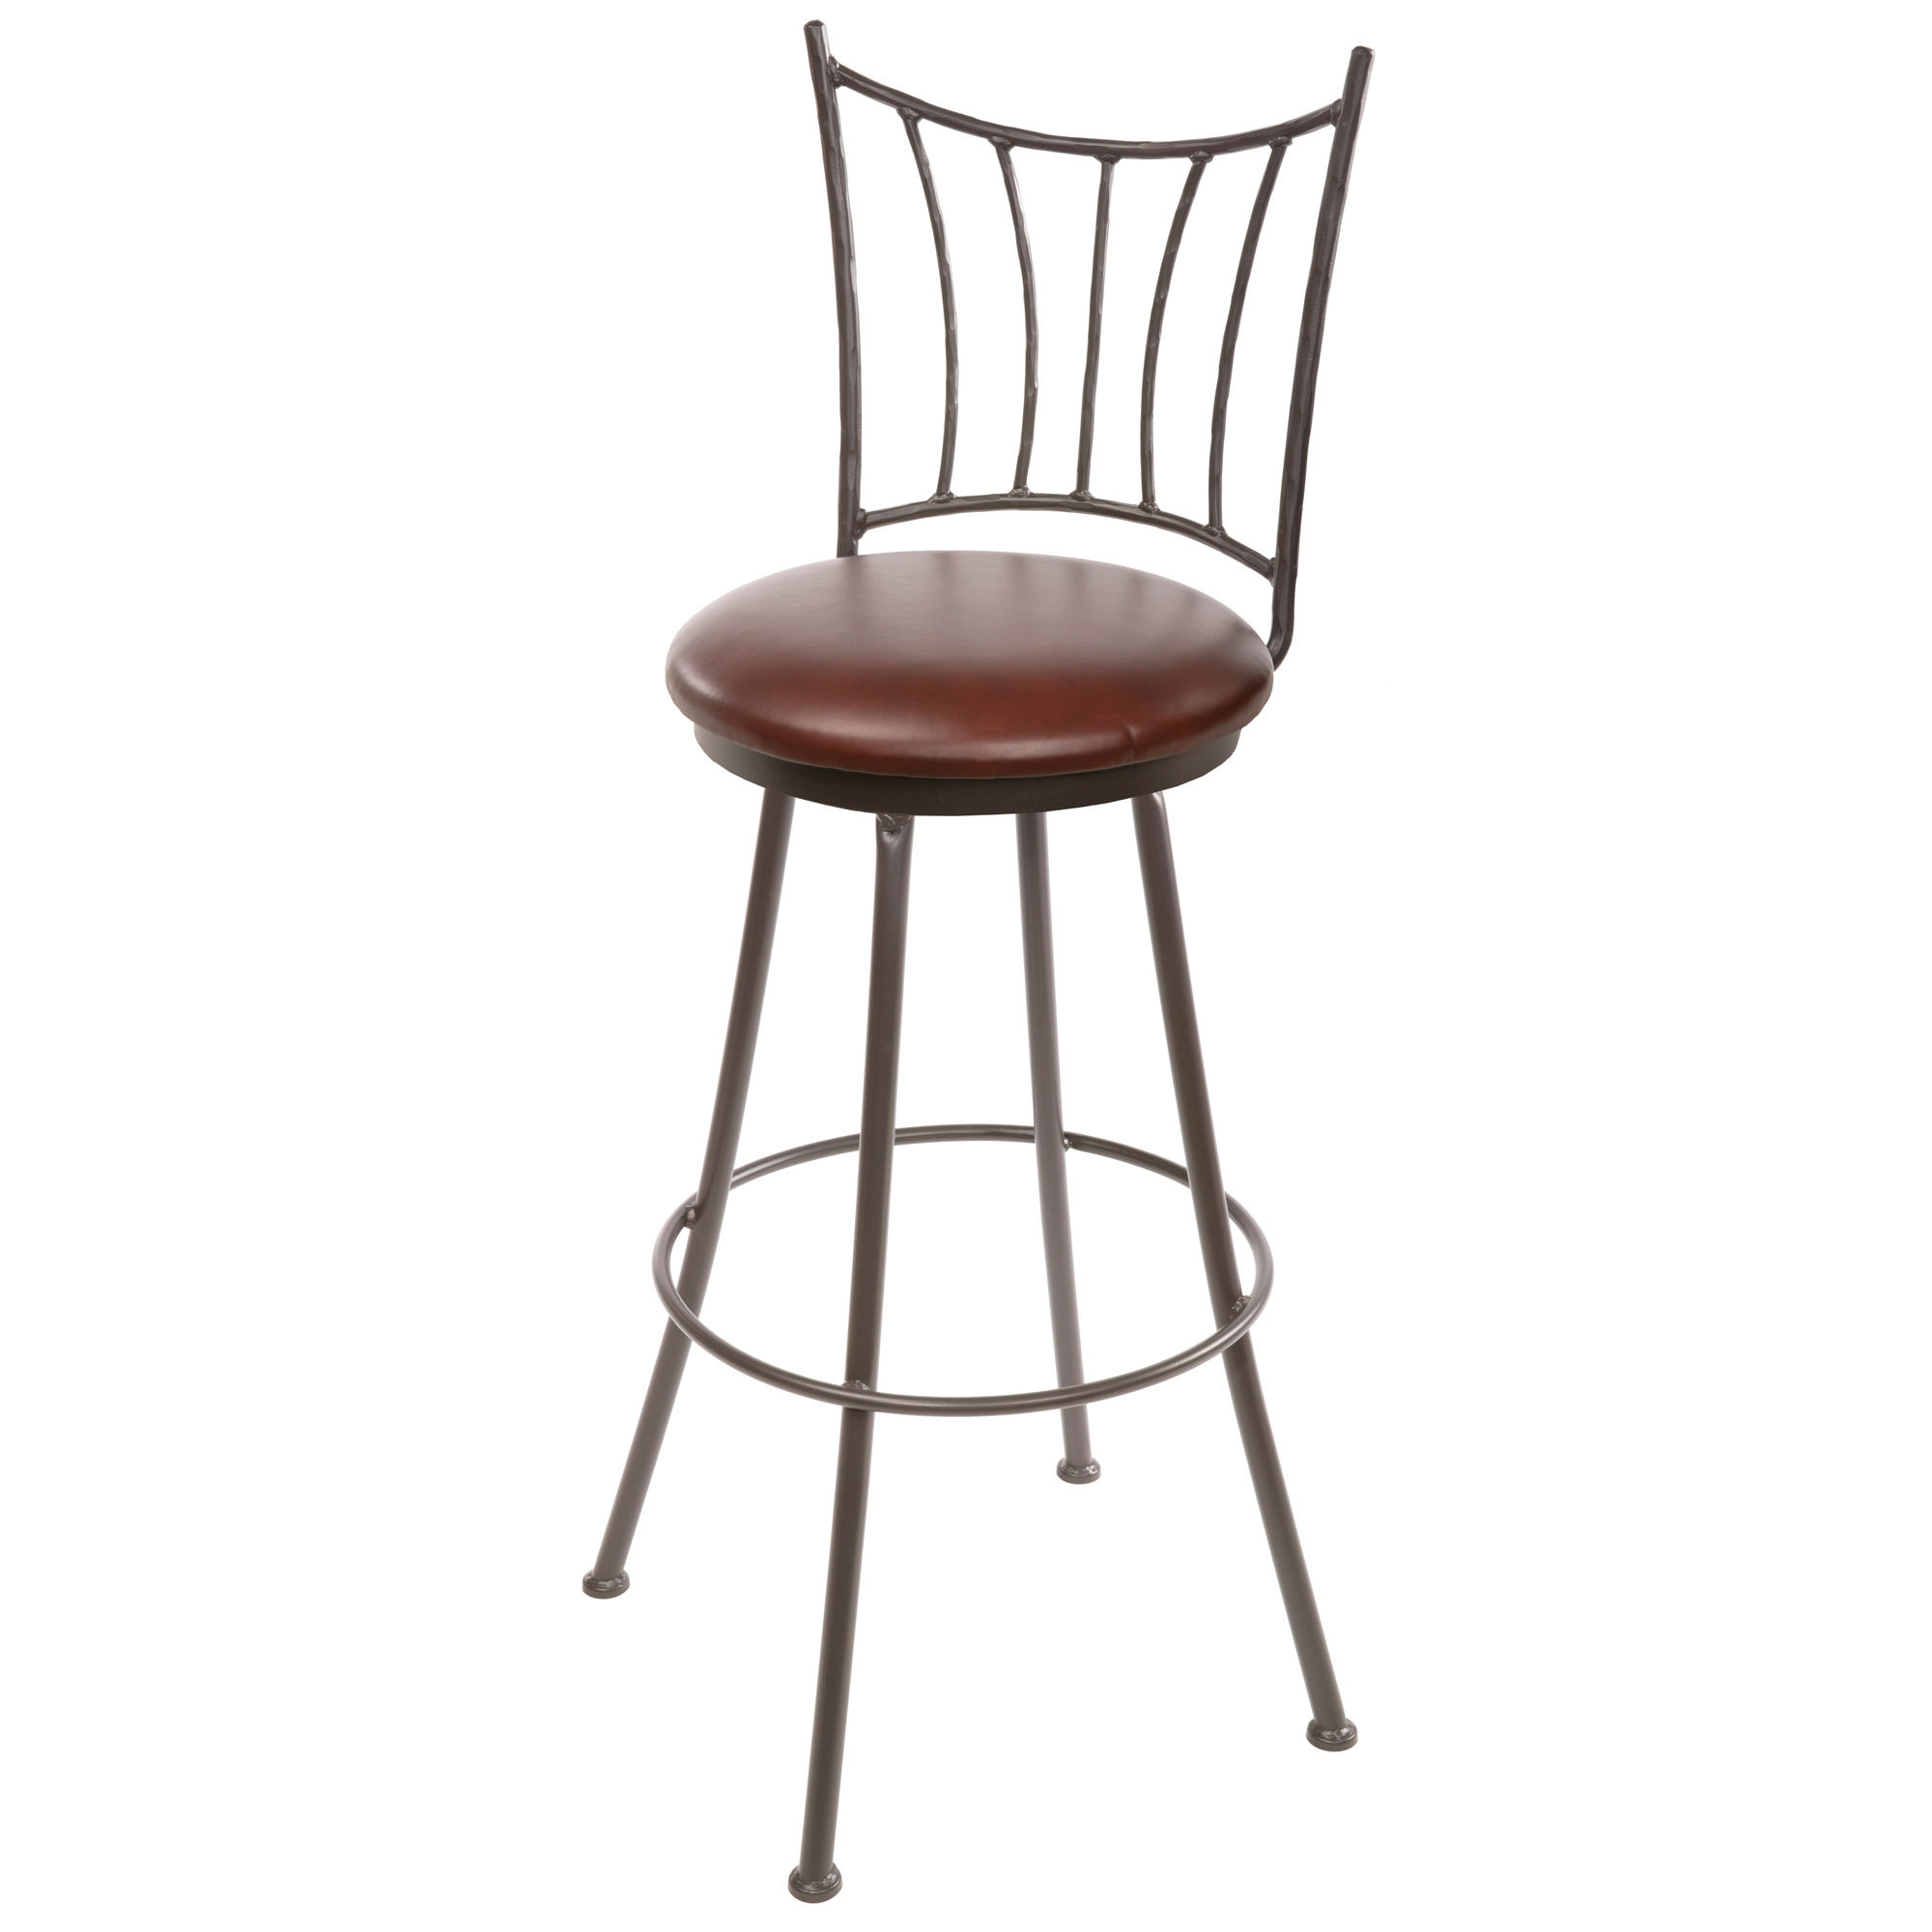 Ranch Wrought Iron Counter Stool 25 in Seat Height : TWI 30 075 2 from timelesswroughtiron.com size 2000 x 2000 jpeg 279kB